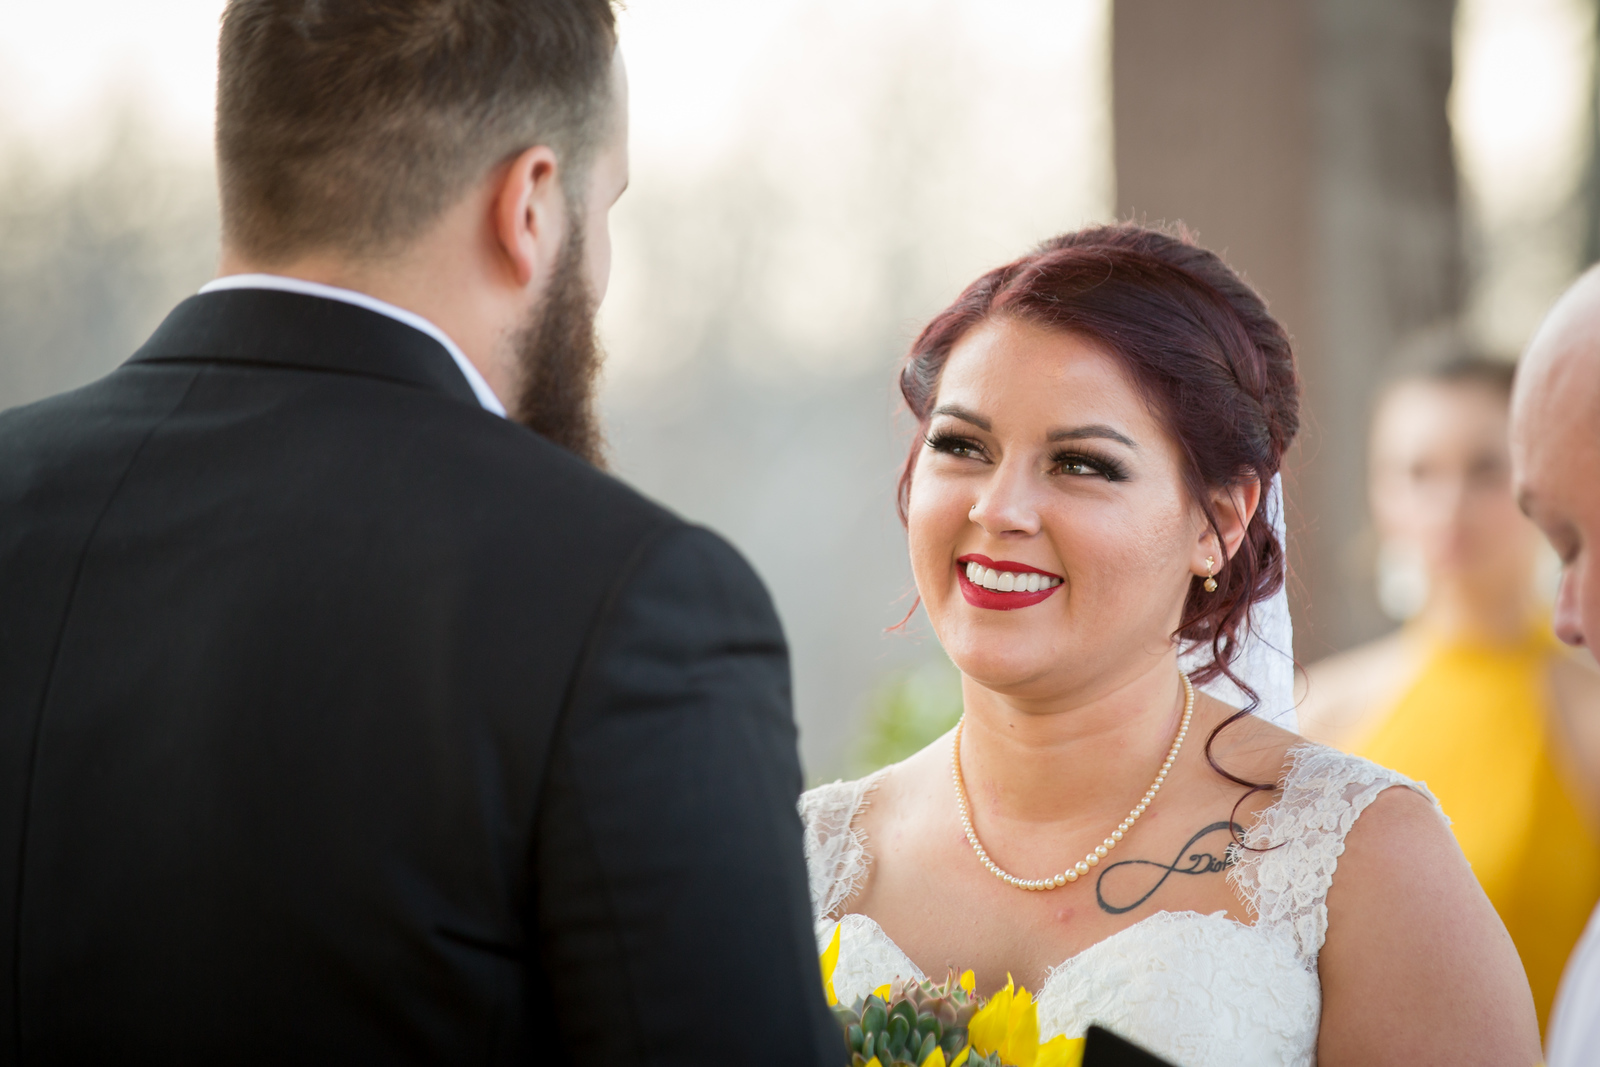 a bride looking at her groom at the altar as they are getting married